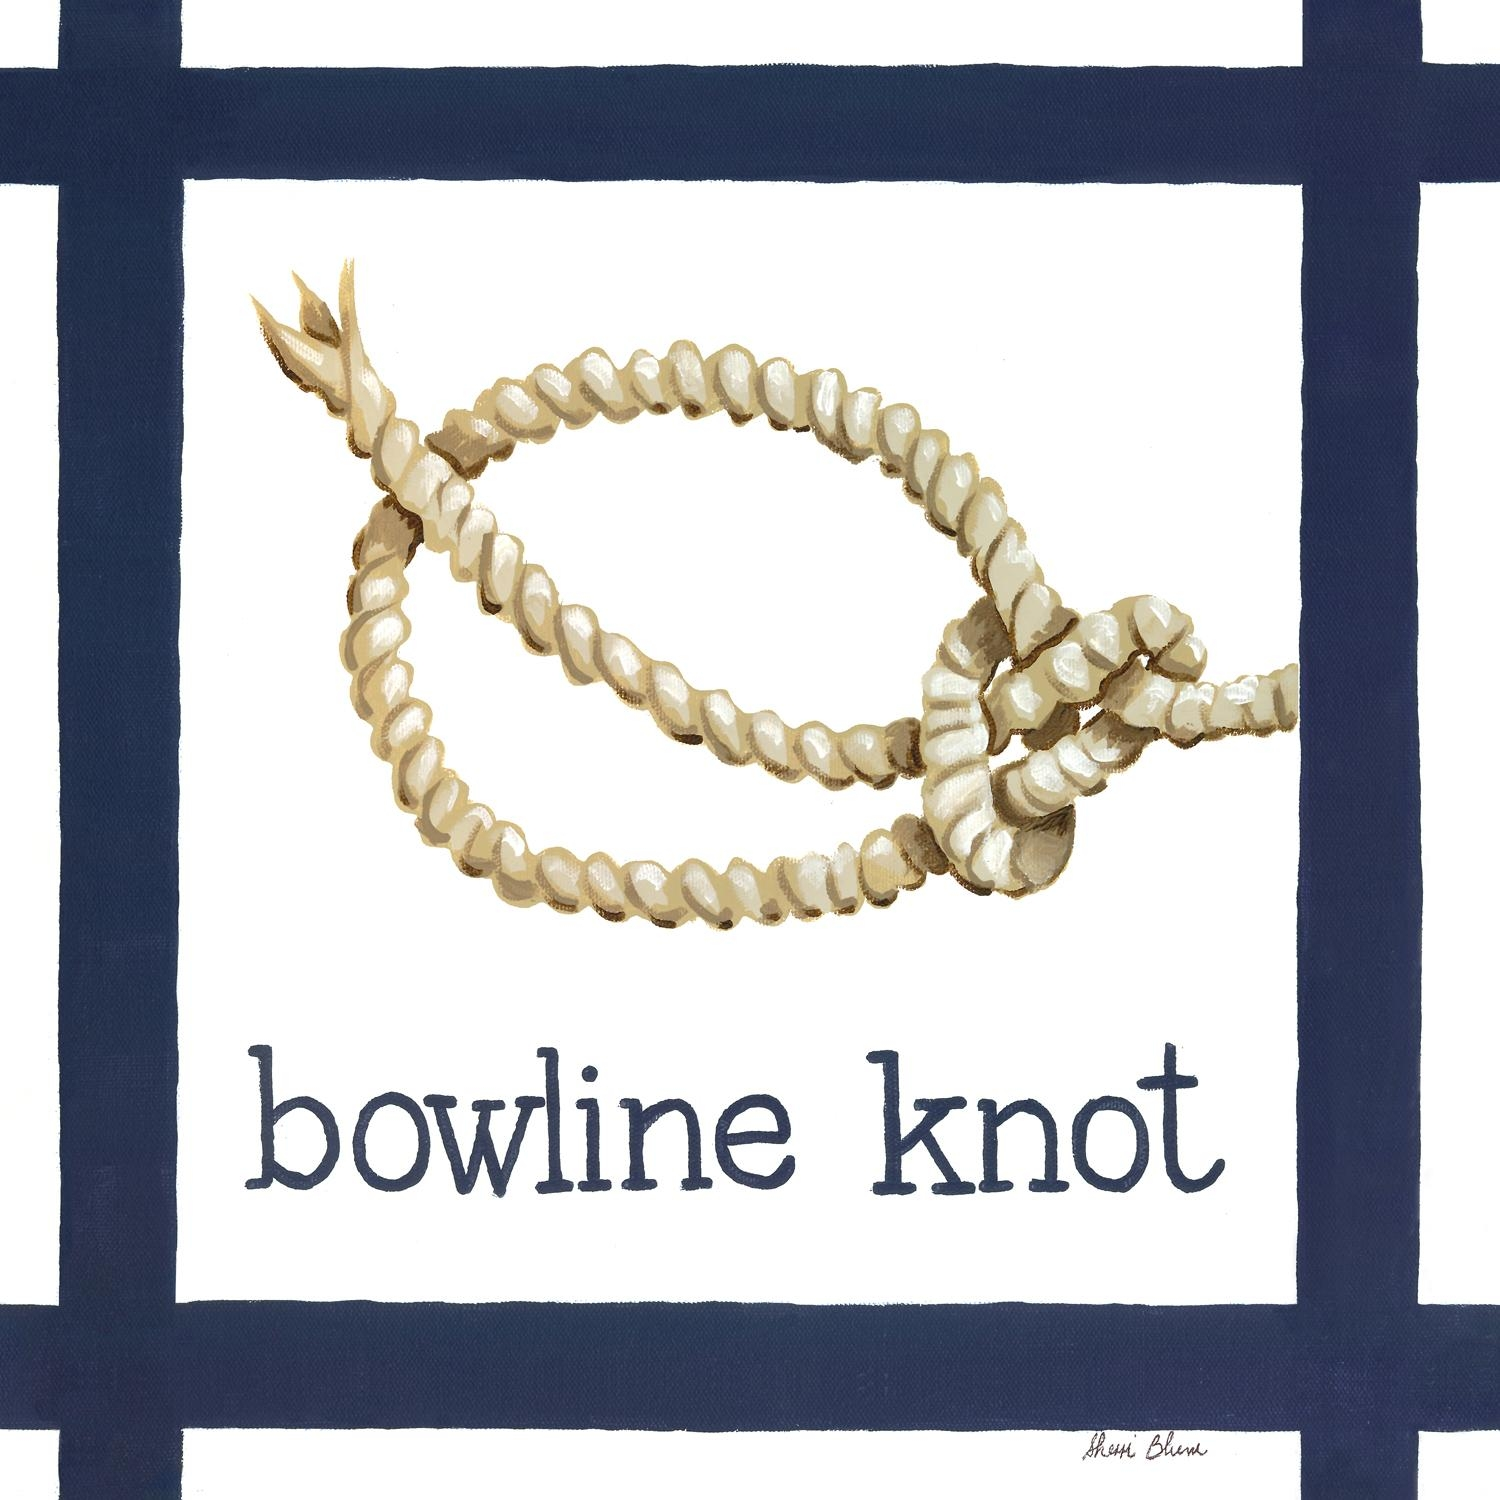 Nautical Nursery Decor, Nautical Knot Bowline Canvas Wall Art For Kids Regarding Nautical Canvas Wall Art (View 20 of 20)